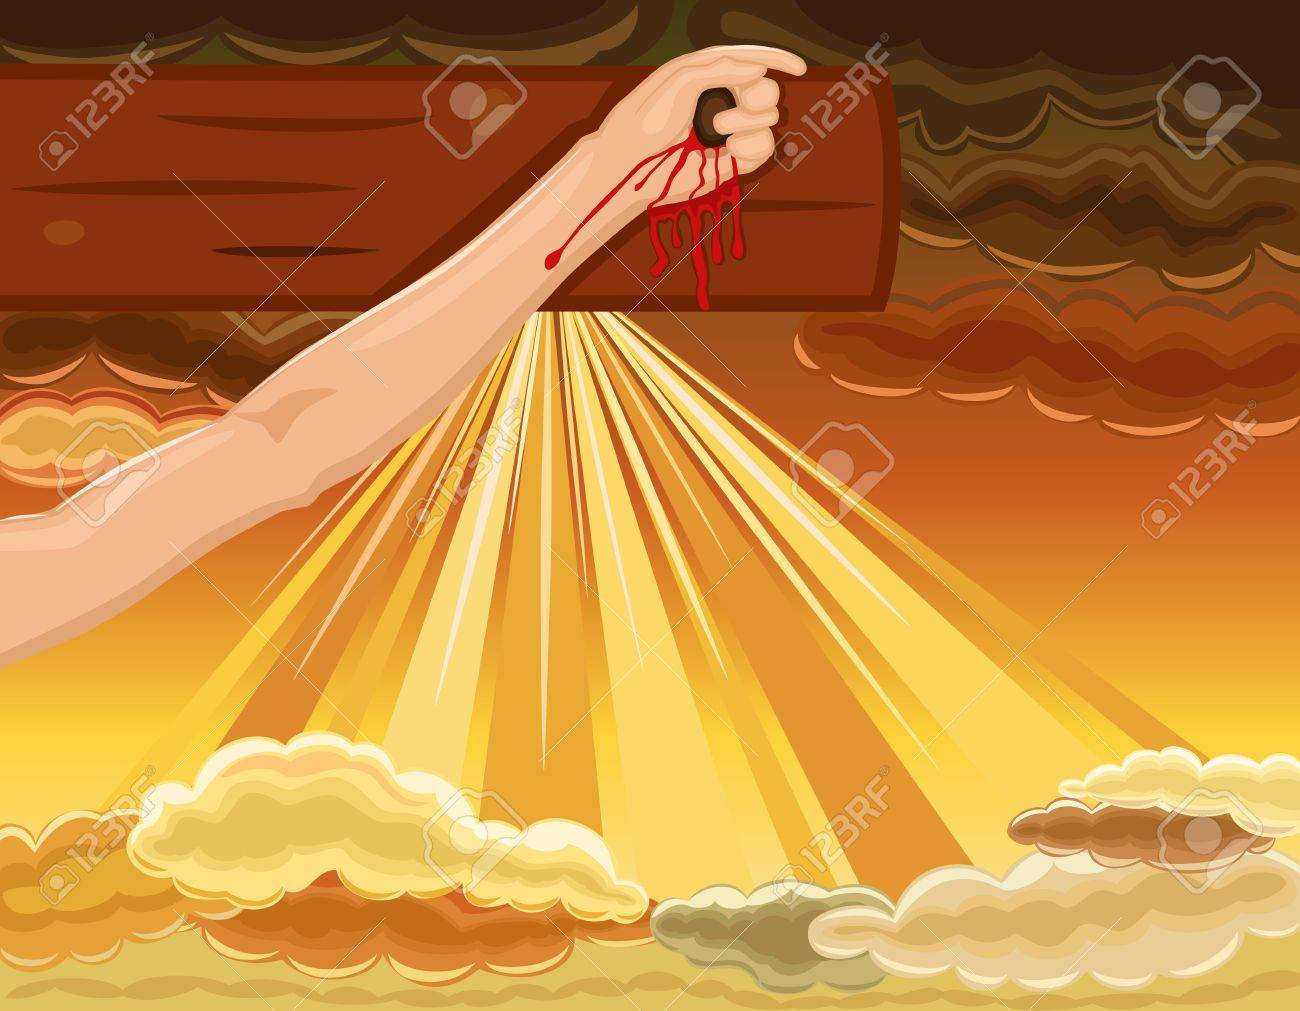 Easter religious card with hand of Jesus nailed to the cross. Over dramatic sky. Stock Vector - 12857886